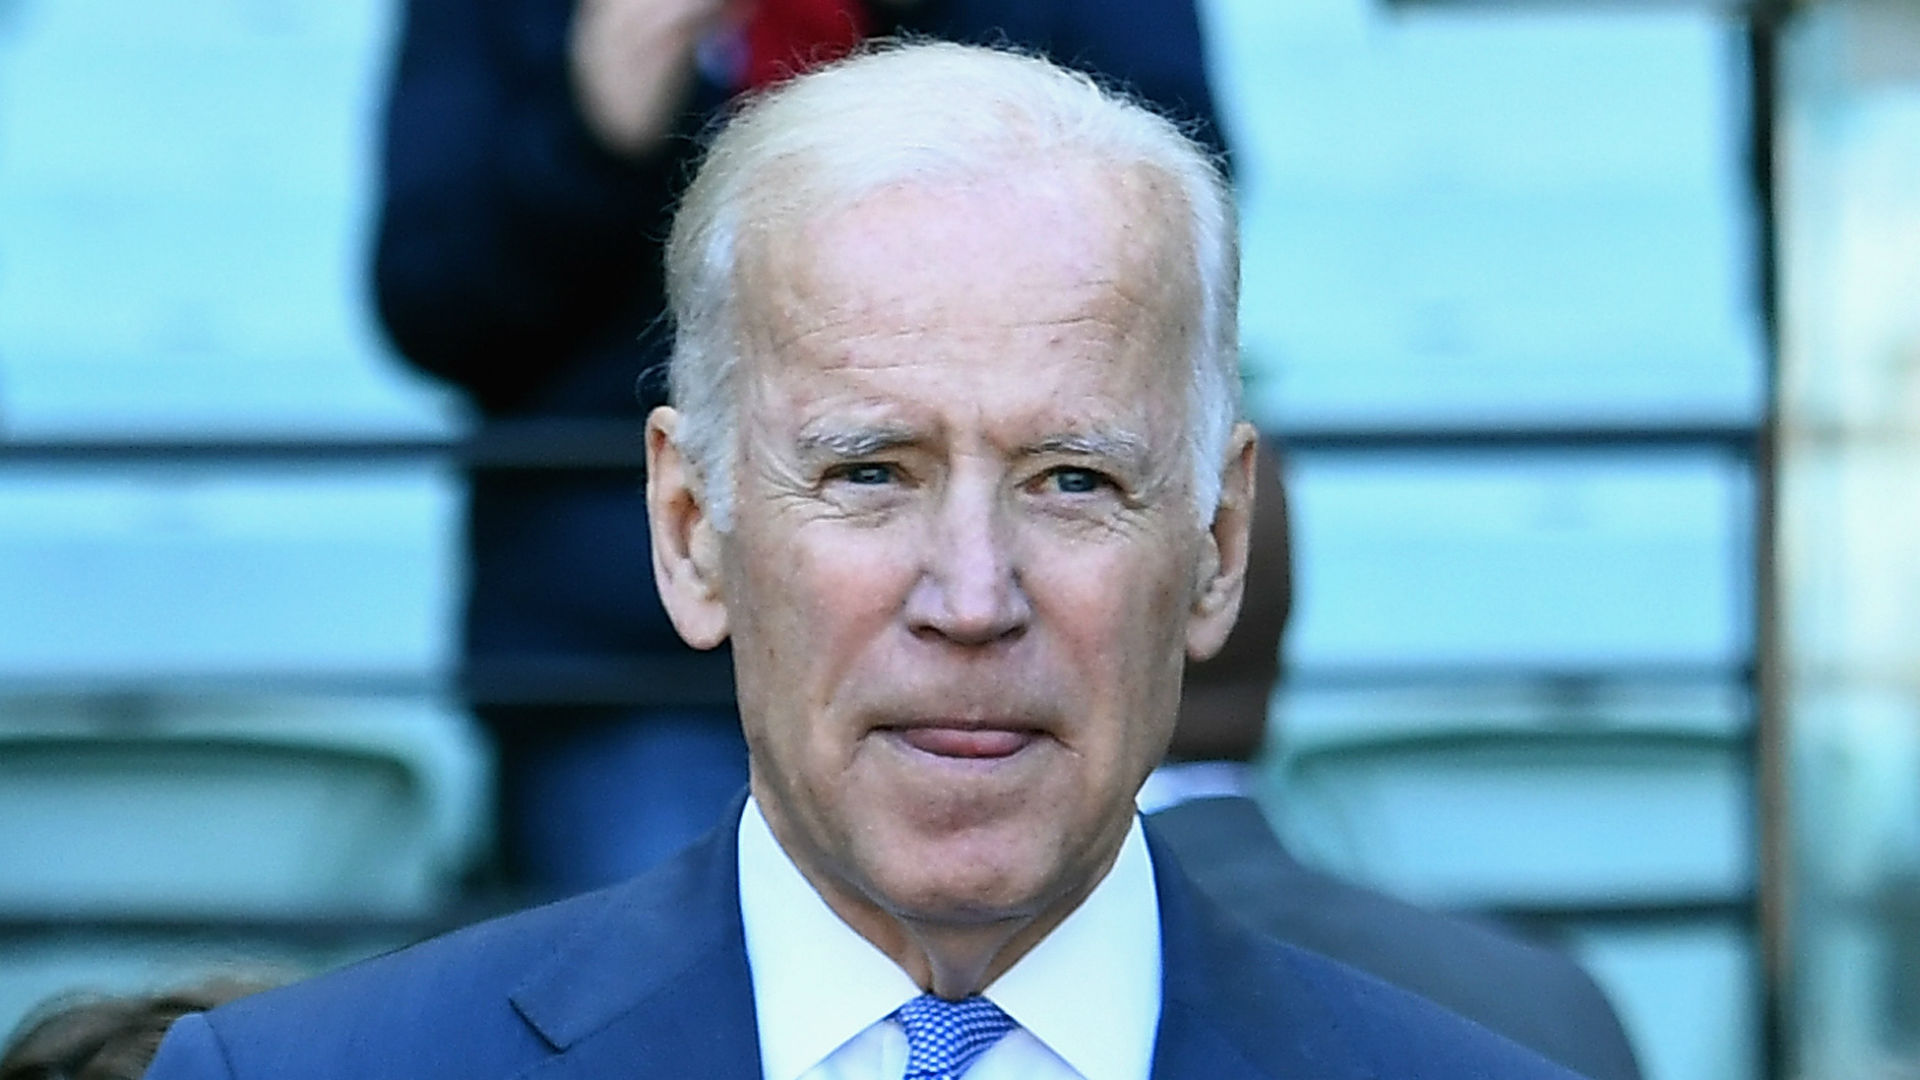 Joe Biden gives US Soccer ultimatum: Equal pay, or no World Cup funding